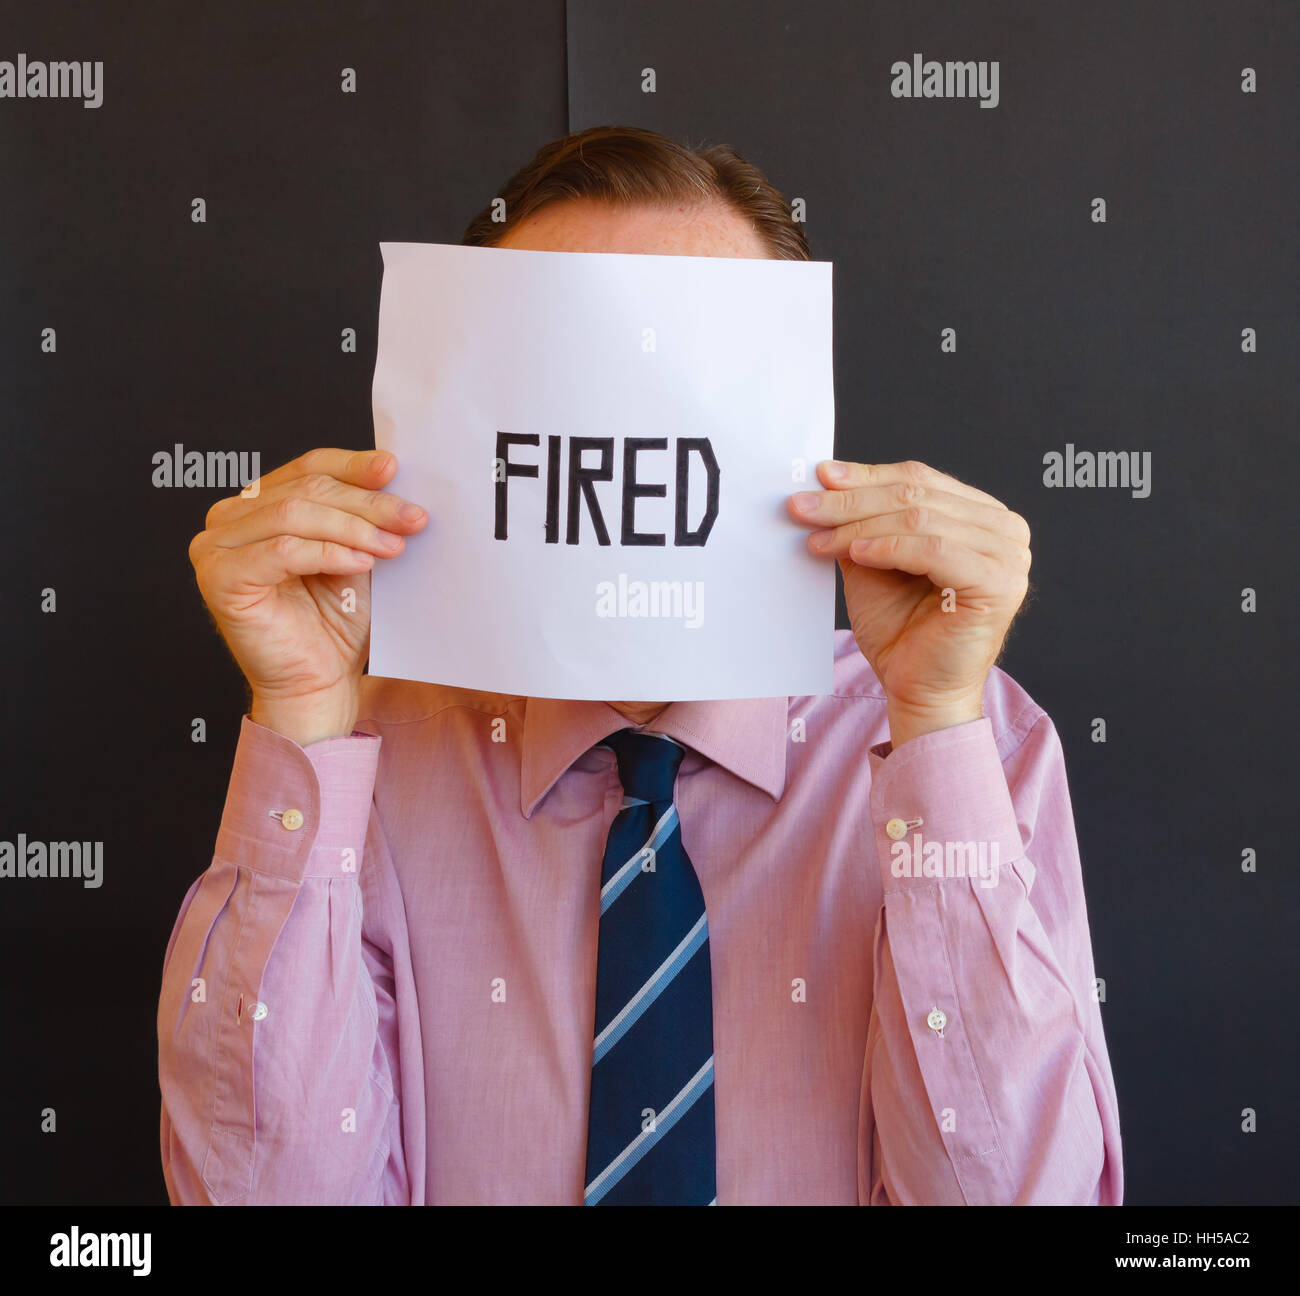 fired man - Stock Image